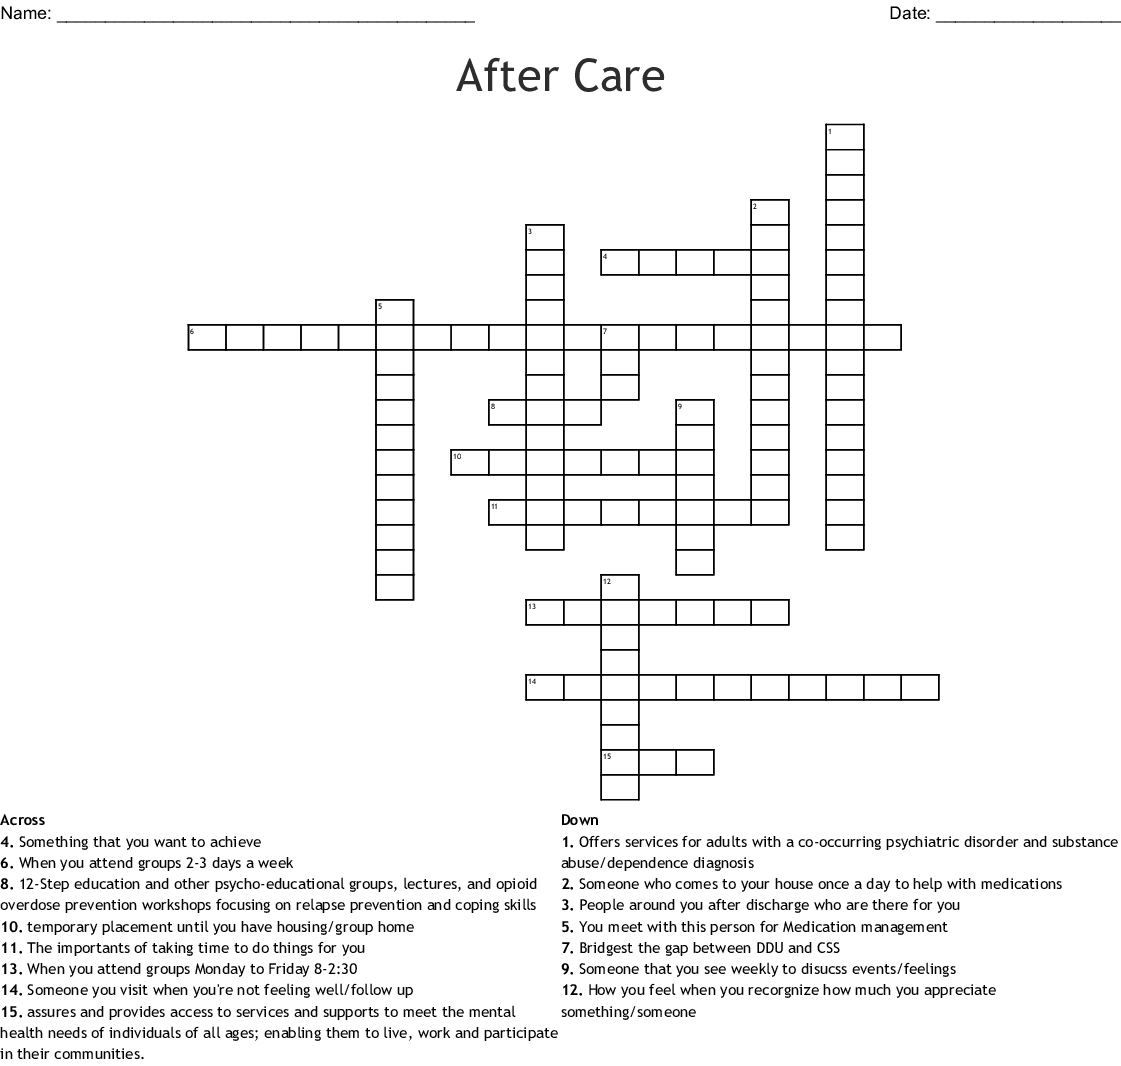 After Care Crossword